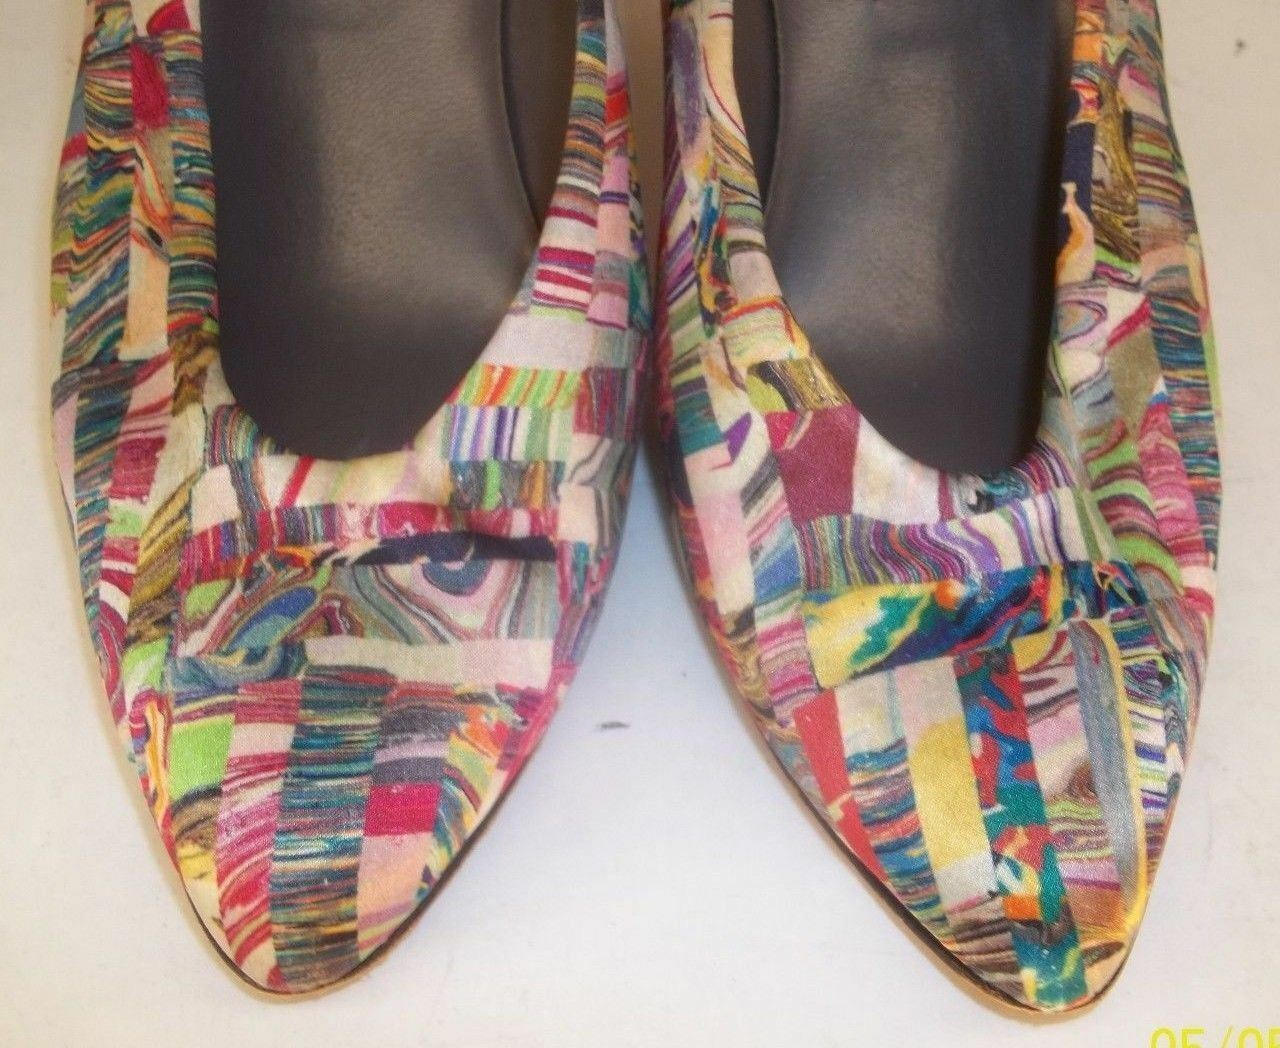 Sesto Meucci Wos schuhe US 5.5M Fabric Leather Leather Leather Slip-On Pumps Heels 152 ac223d